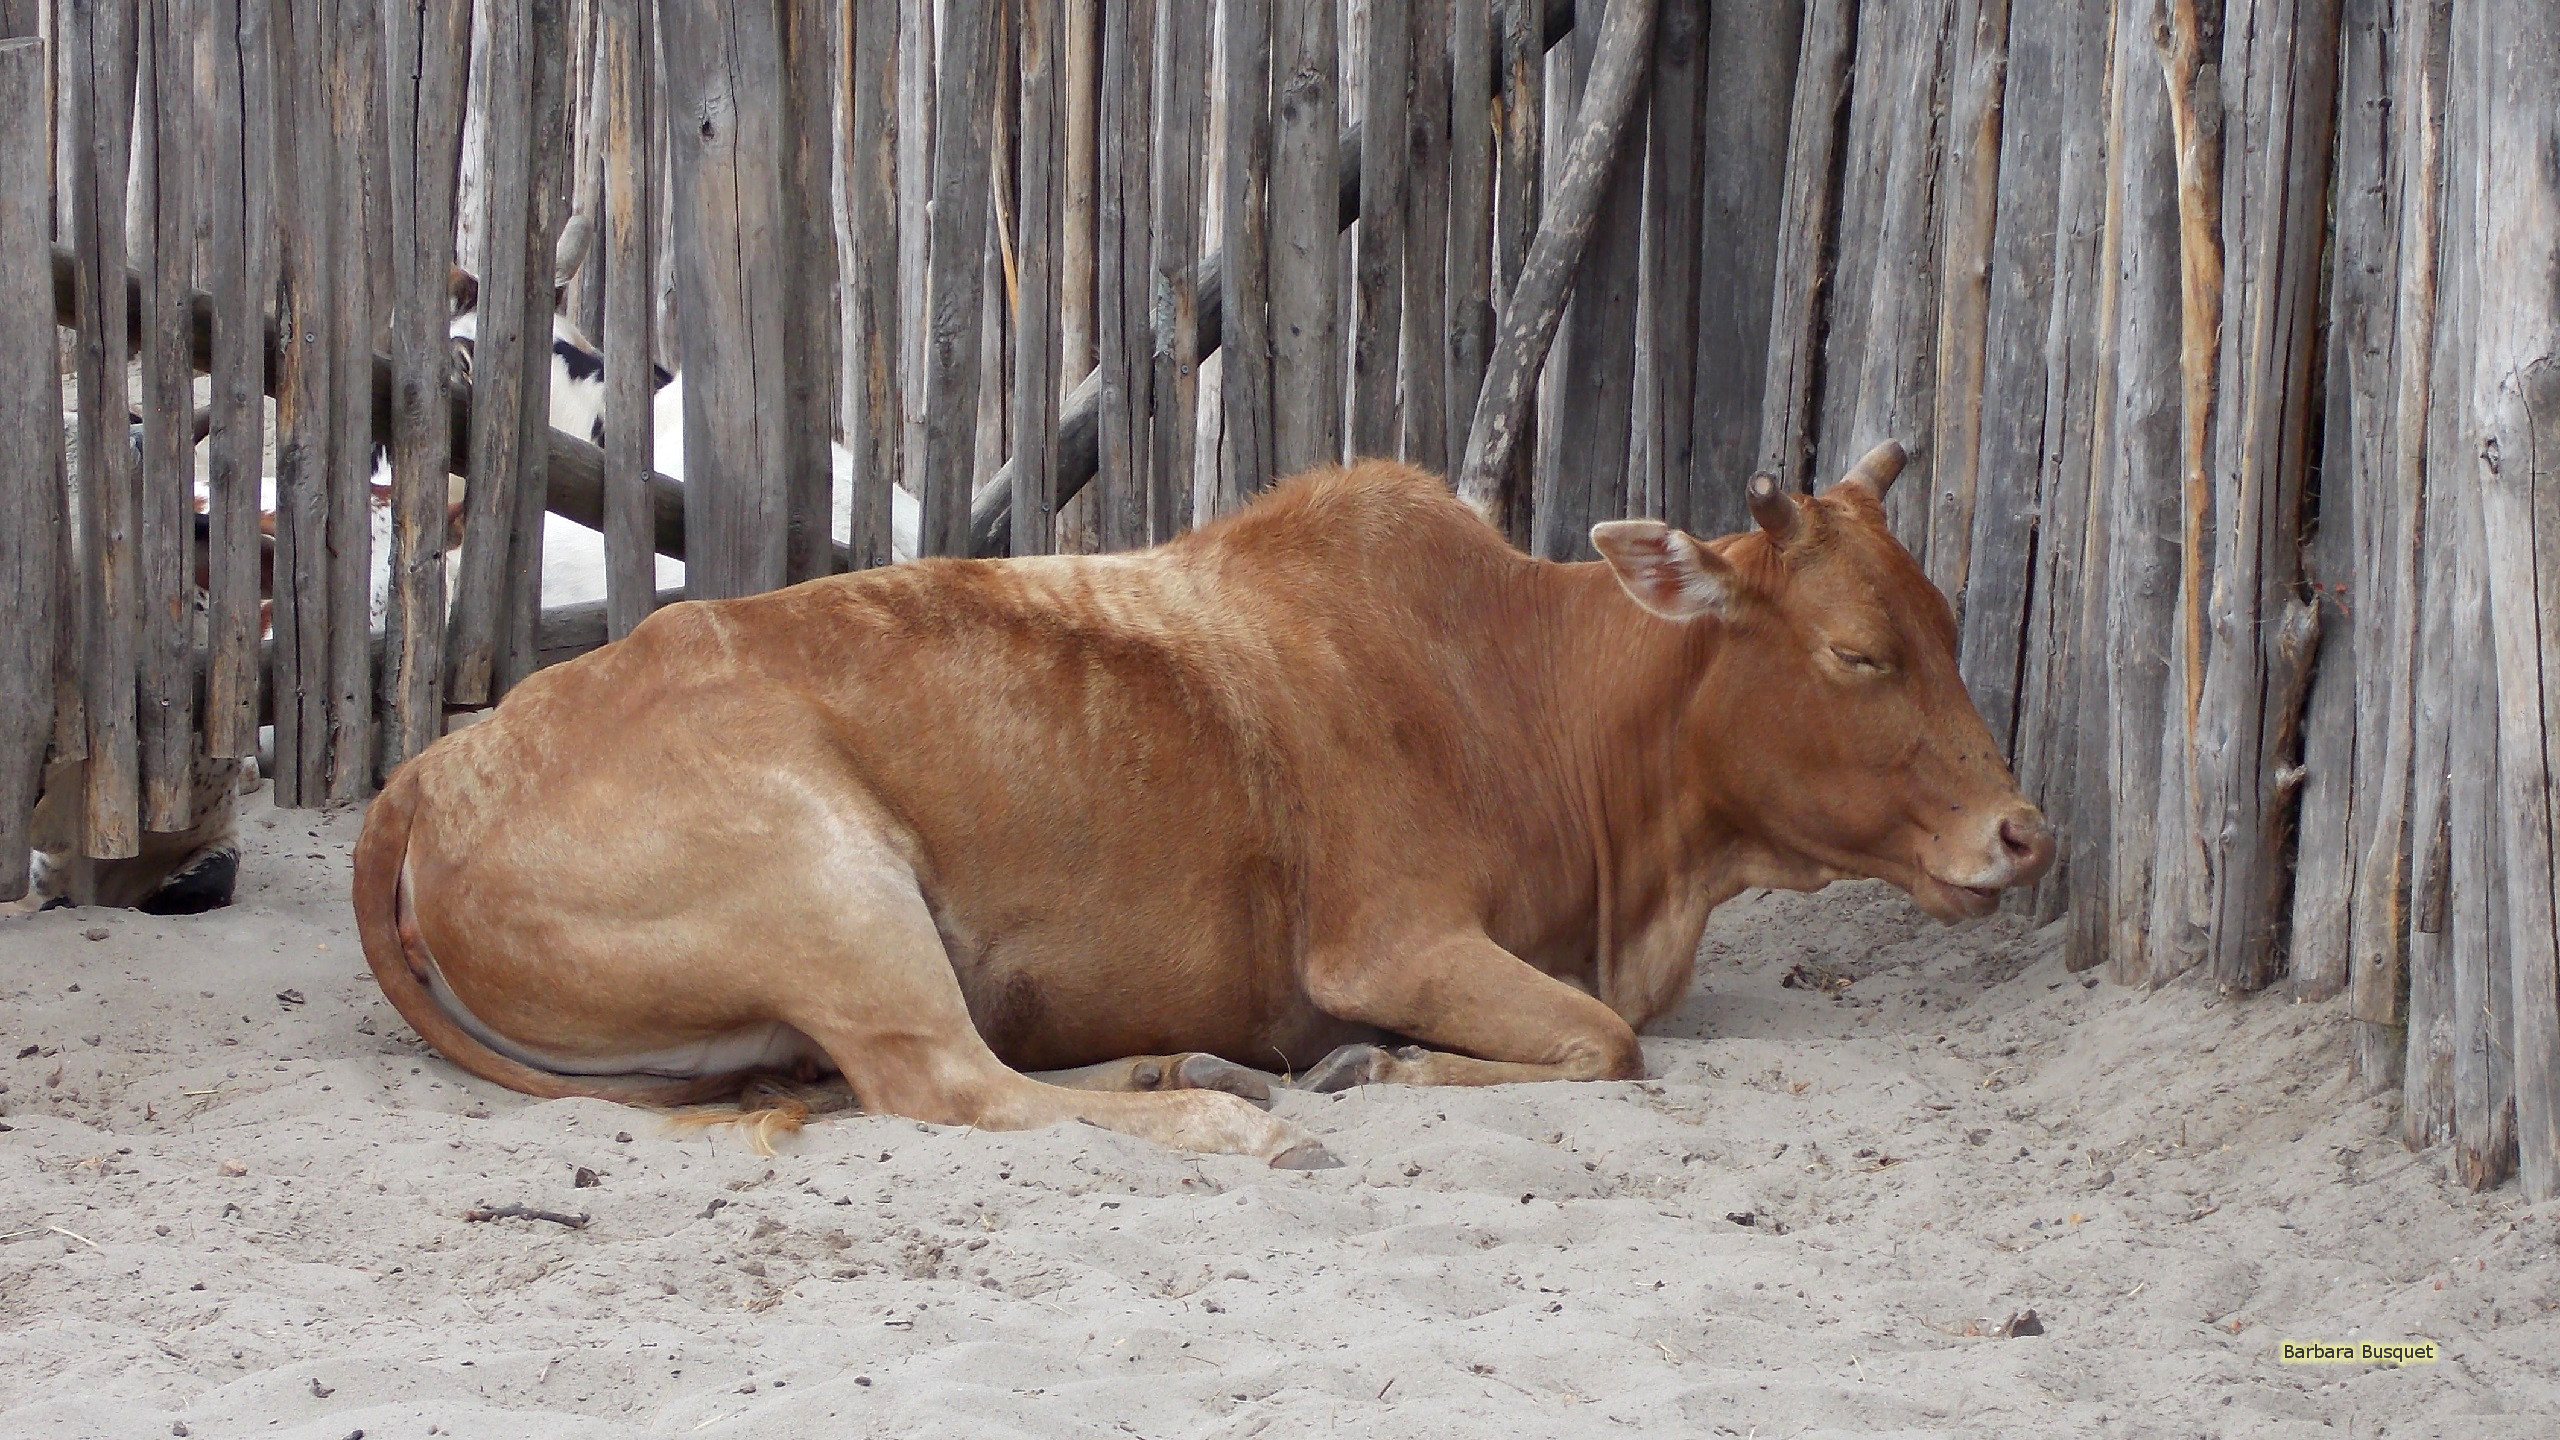 Cattle Wallpaper Brown Cow Barbara S Hd Wallpapers